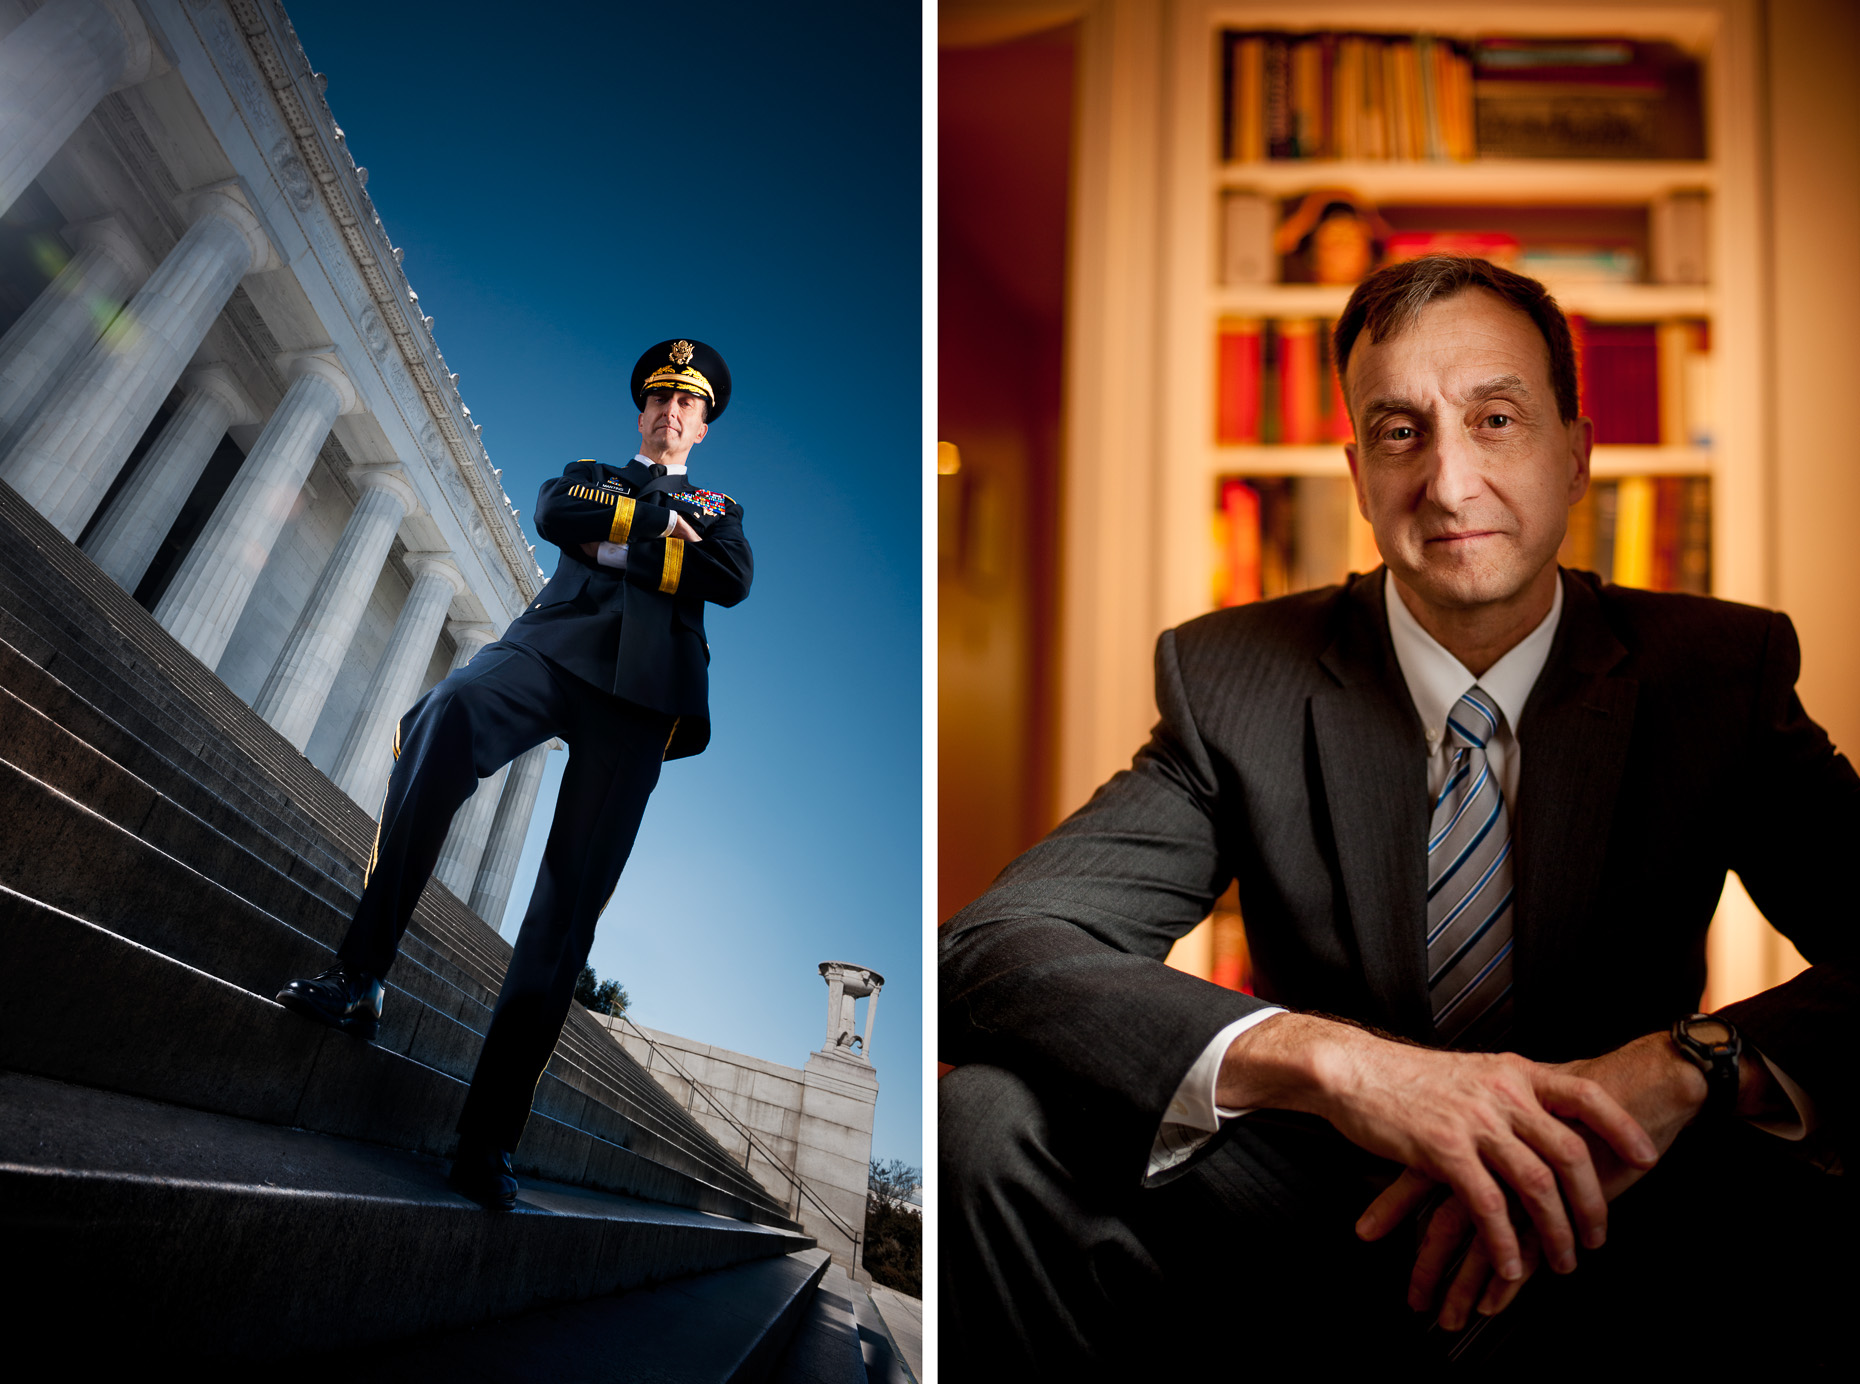 Brigadier General Mark Martins Editorial portraits